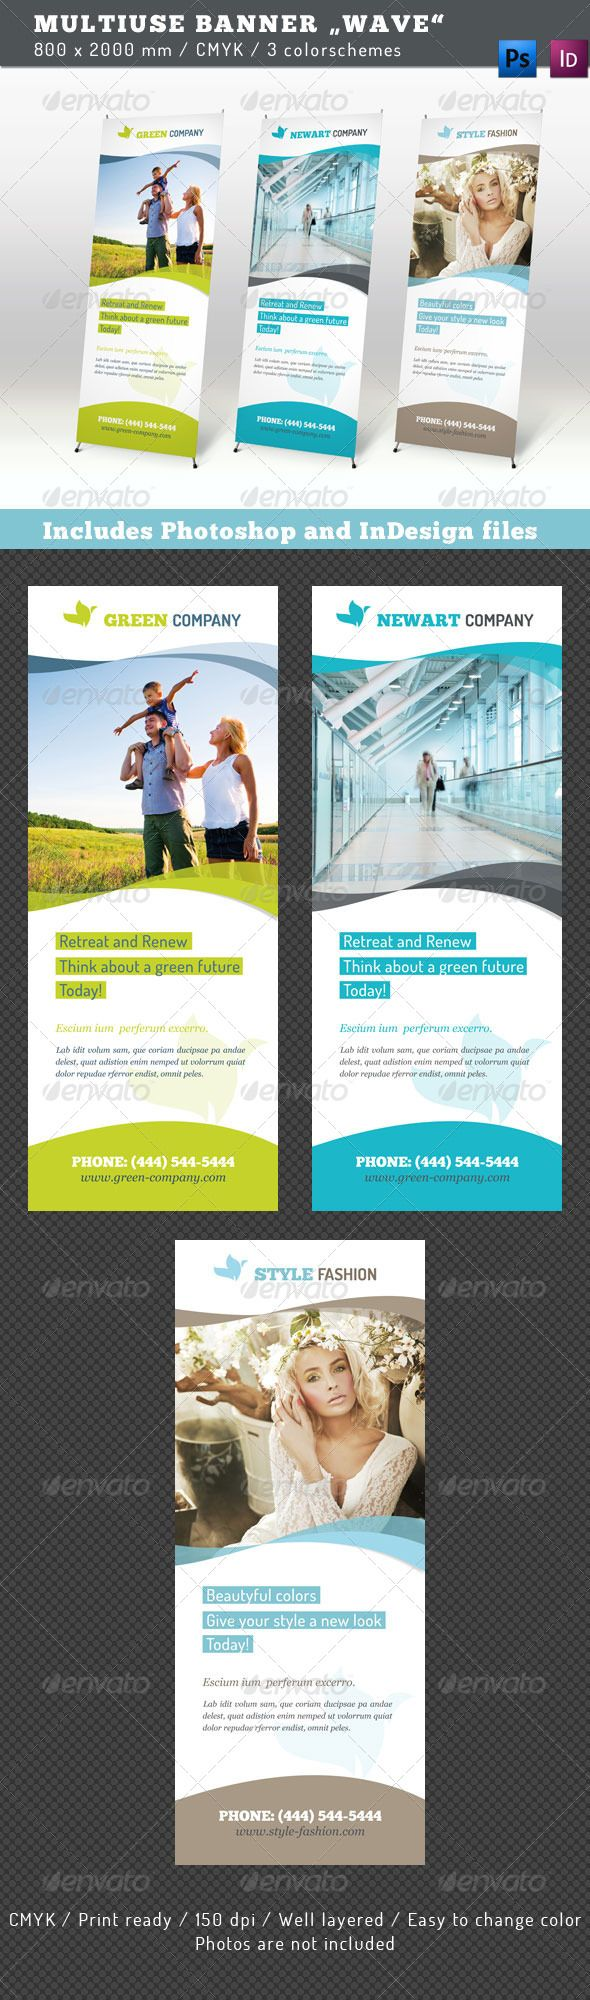 """Multiuse Banner """"Wave"""" #GraphicRiver Get the bundle! Multiuse Banner """"Wave"""" This templates for a stand display, available in 3 different colorschemes. The format is 800×2000 mm. The files are fully editable and print ready. Features: 3 Photoshop files with the different colorschemes 3 files InDesign CS5 .indd, 3 files CS4 version .idml and 3 files CS3 .inx All templates are layered for an easier modification Graphical elements as vector shapes included Fonts: Chunk five Dosis Georgia (System…"""